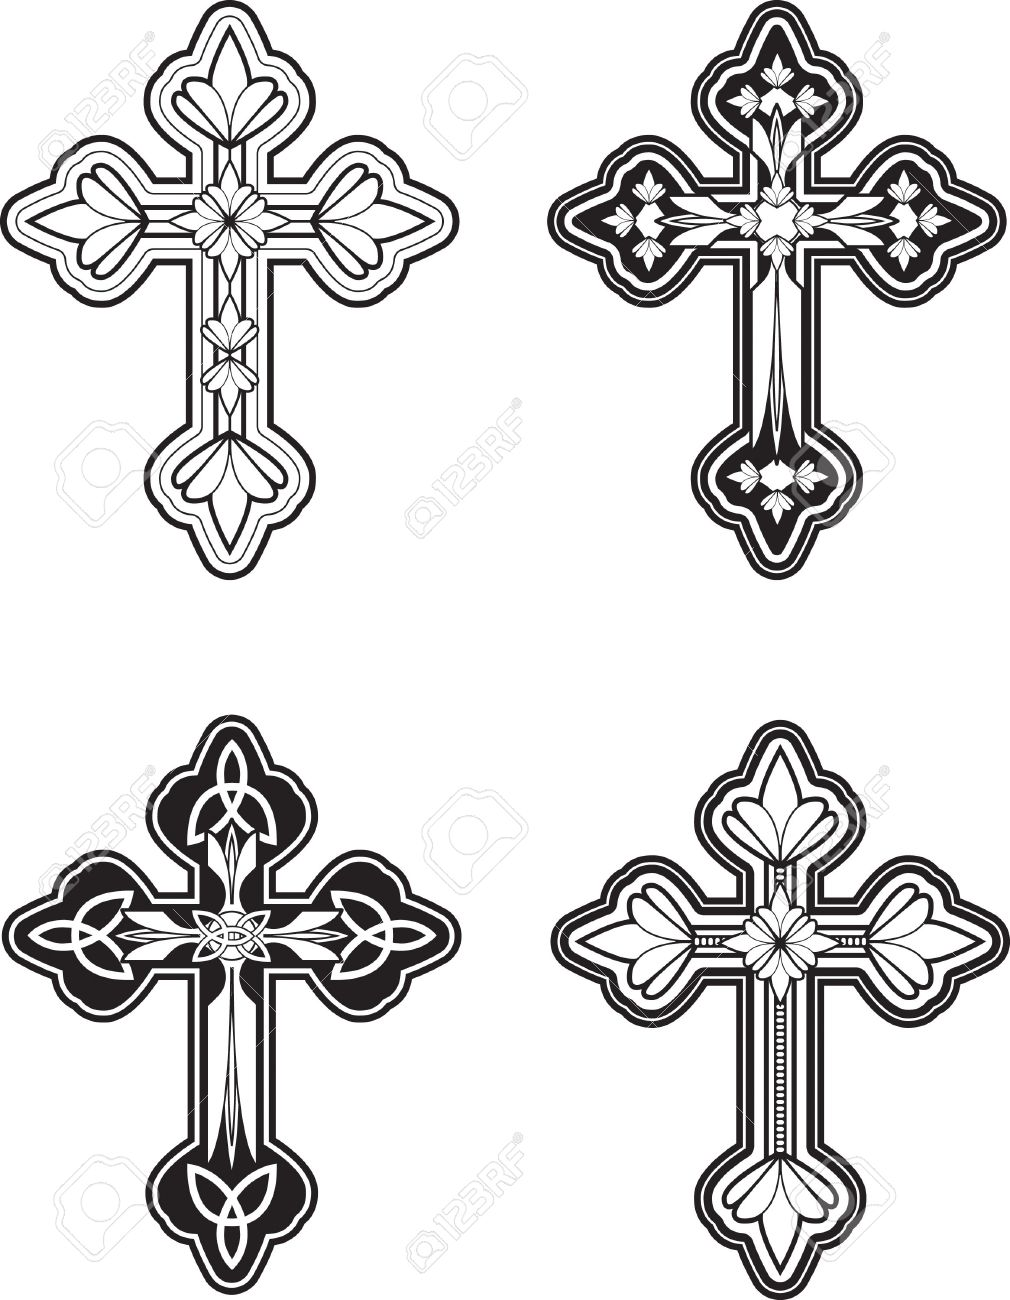 A group of ornate celtic cross designs royalty free cliparts a group of ornate celtic cross designs stock vector 41695073 voltagebd Gallery